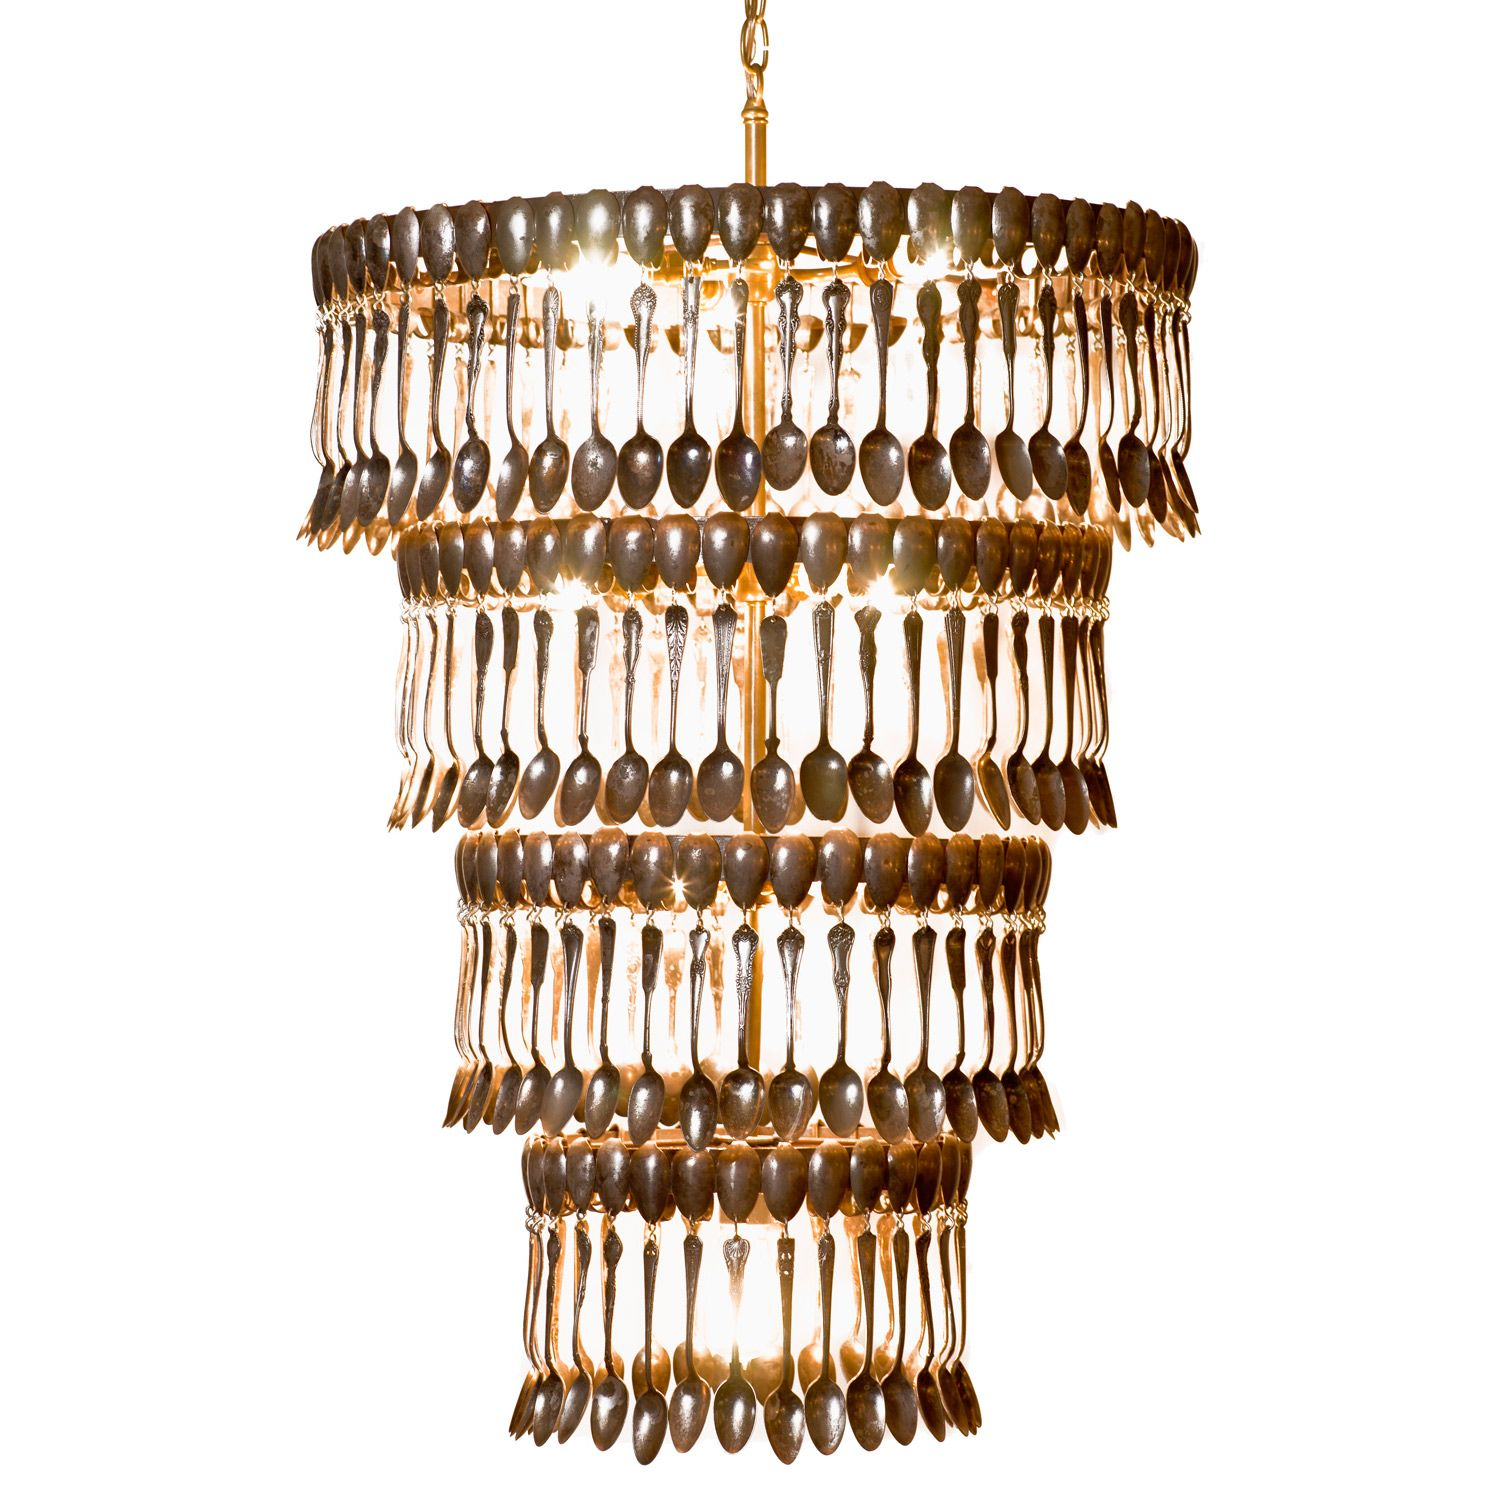 Quadruple Tier Spoon Chandelier @LaylaGrayce | Vintage ...